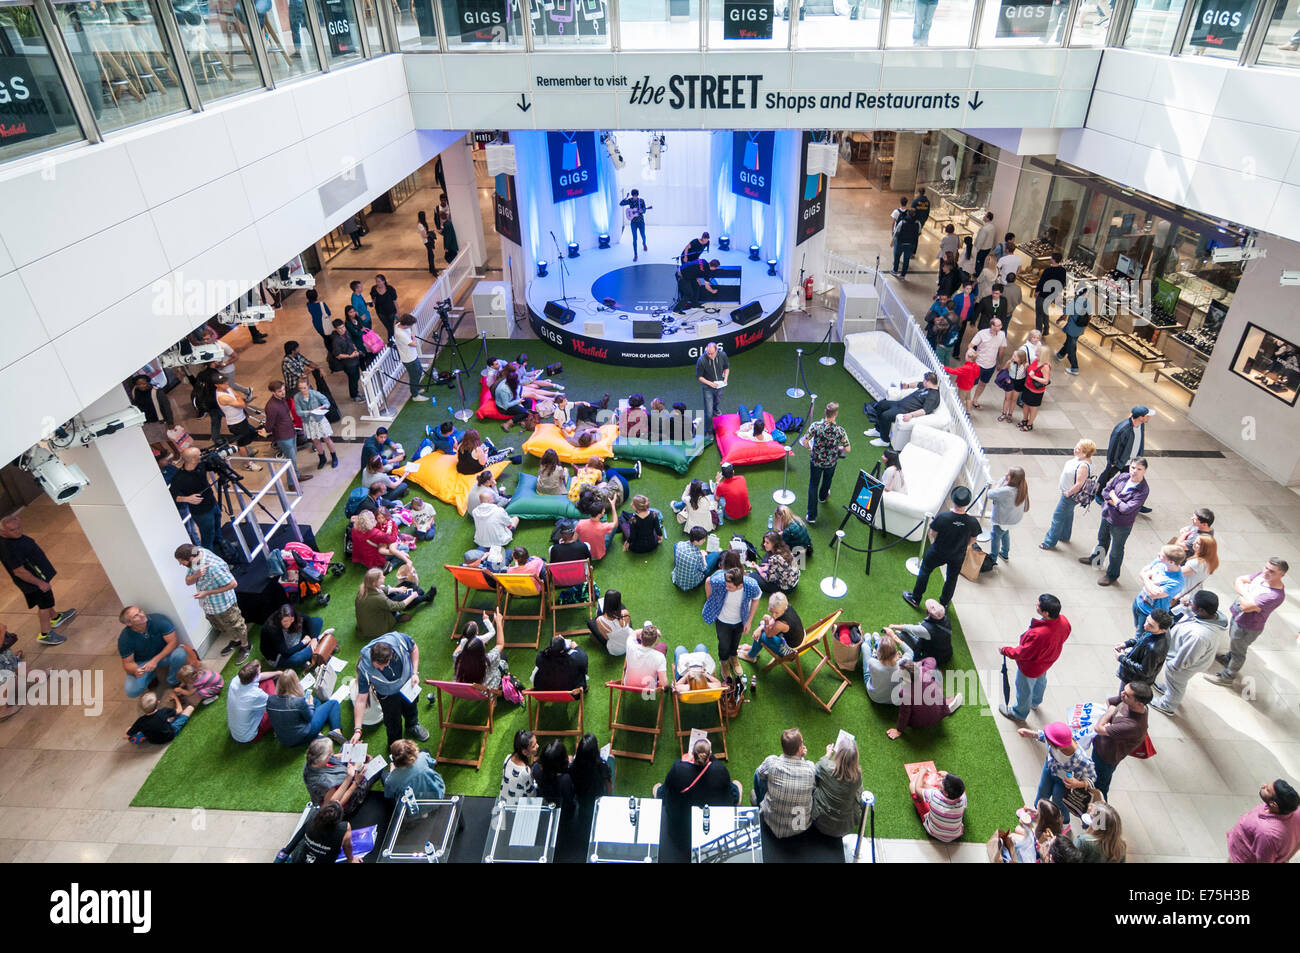 London, UK. 7th September, 2014.  Supported by the Mayor of London, The Grand Final of Gigs Big Busk, the UK's biggest street music competition, took place at Westfield, Stratford in front of huge audiences.    Pictured: view from the upper floor of the stage and audience. Credit:  Stephen Chung/Alamy Live News Stock Photo